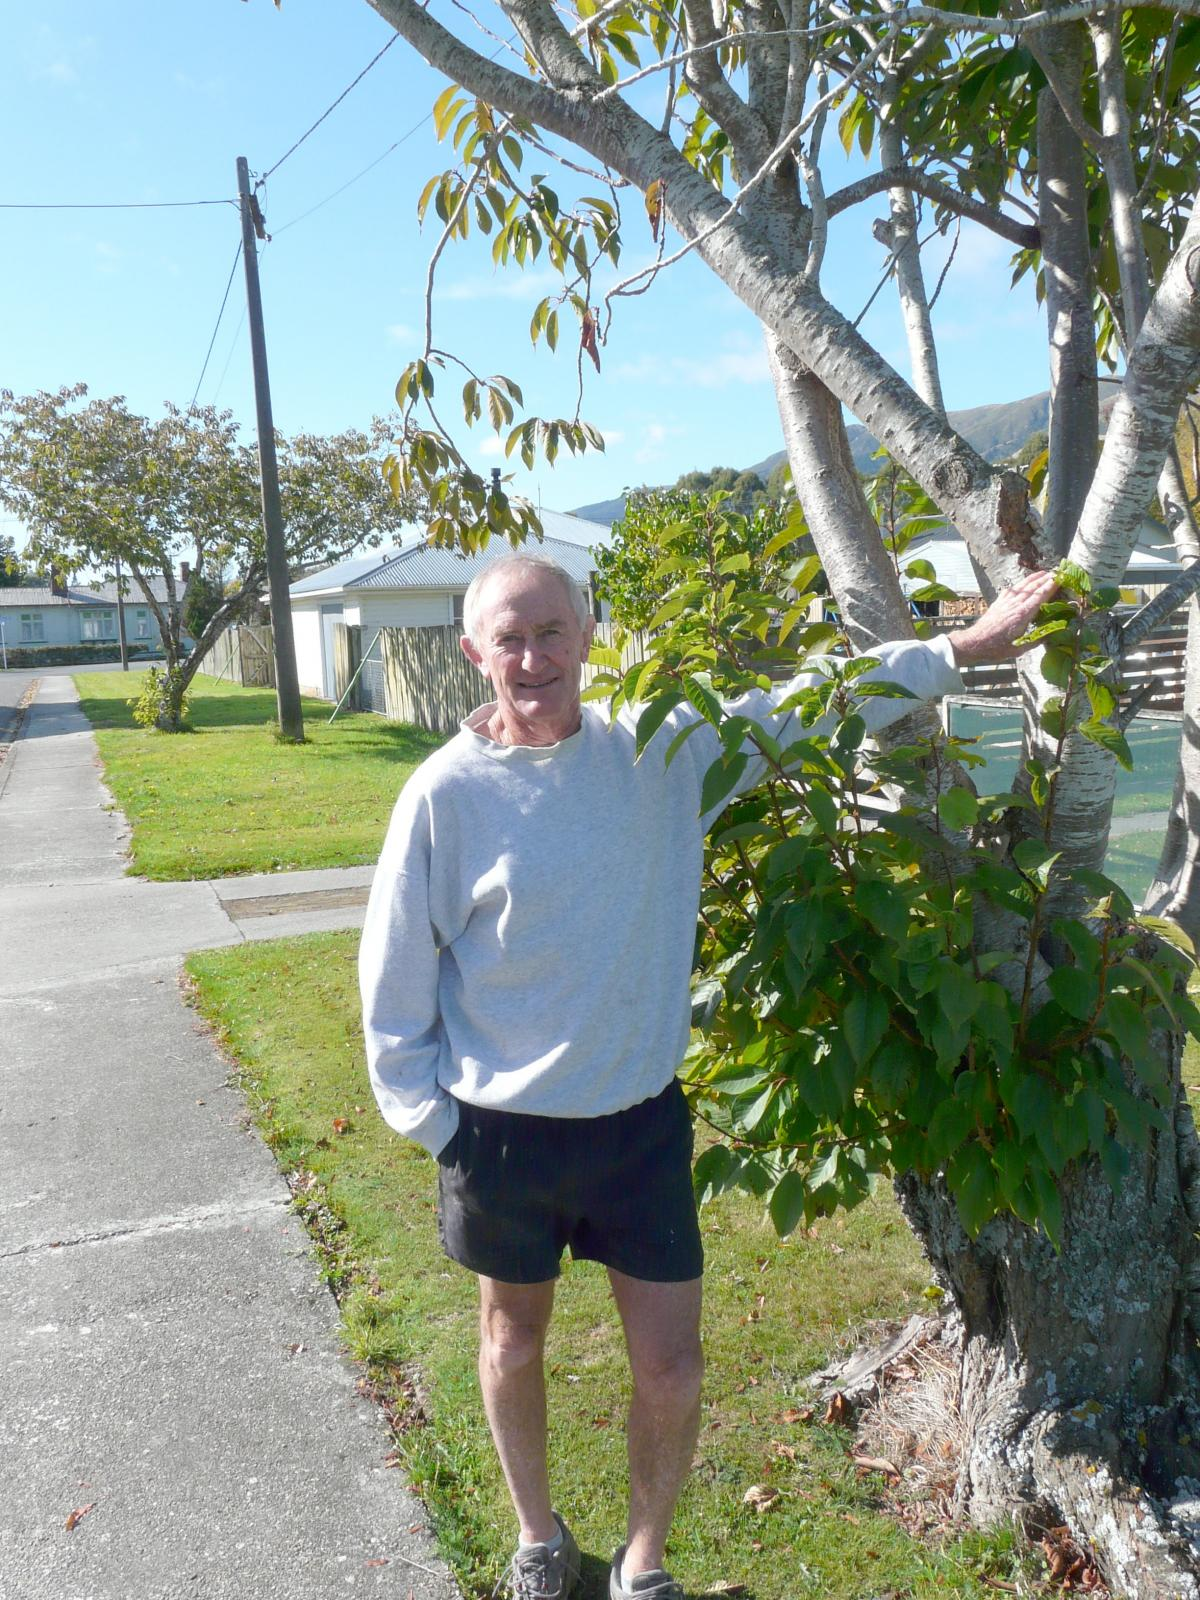 Mixed reaction to planned tree removals